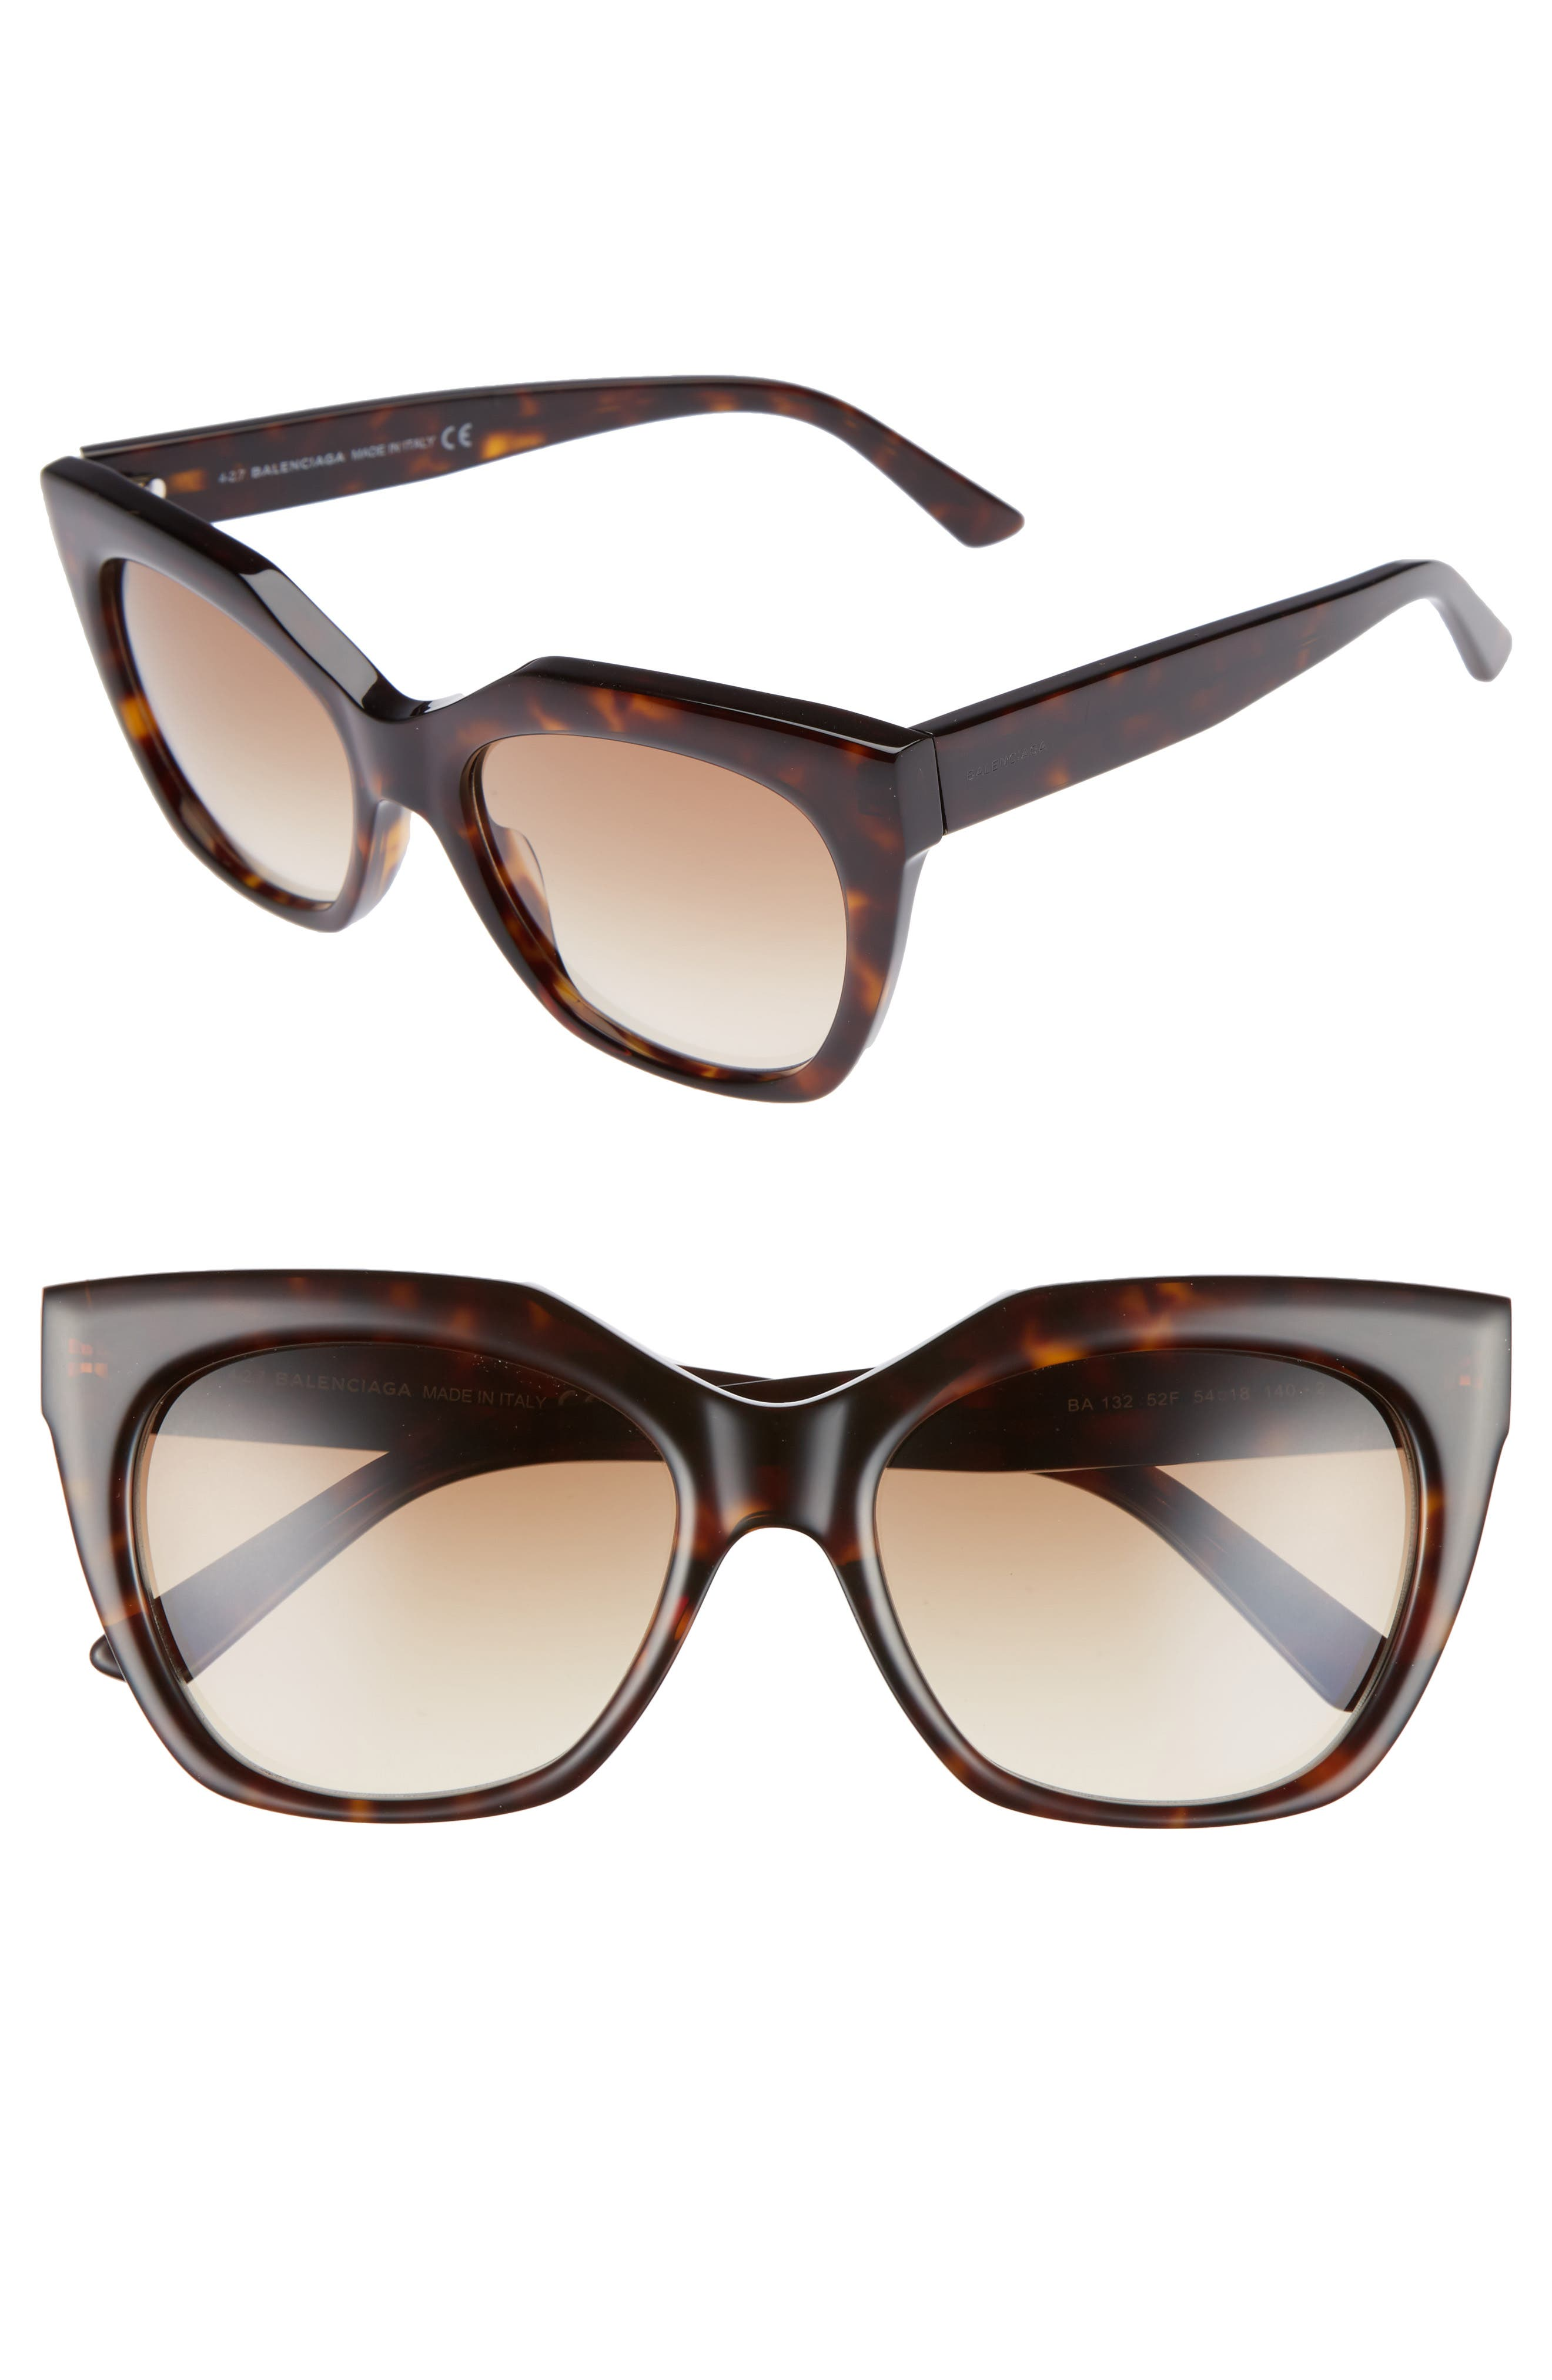 Main Image - Balenciaga 54mm Cat Eye Sunglasses